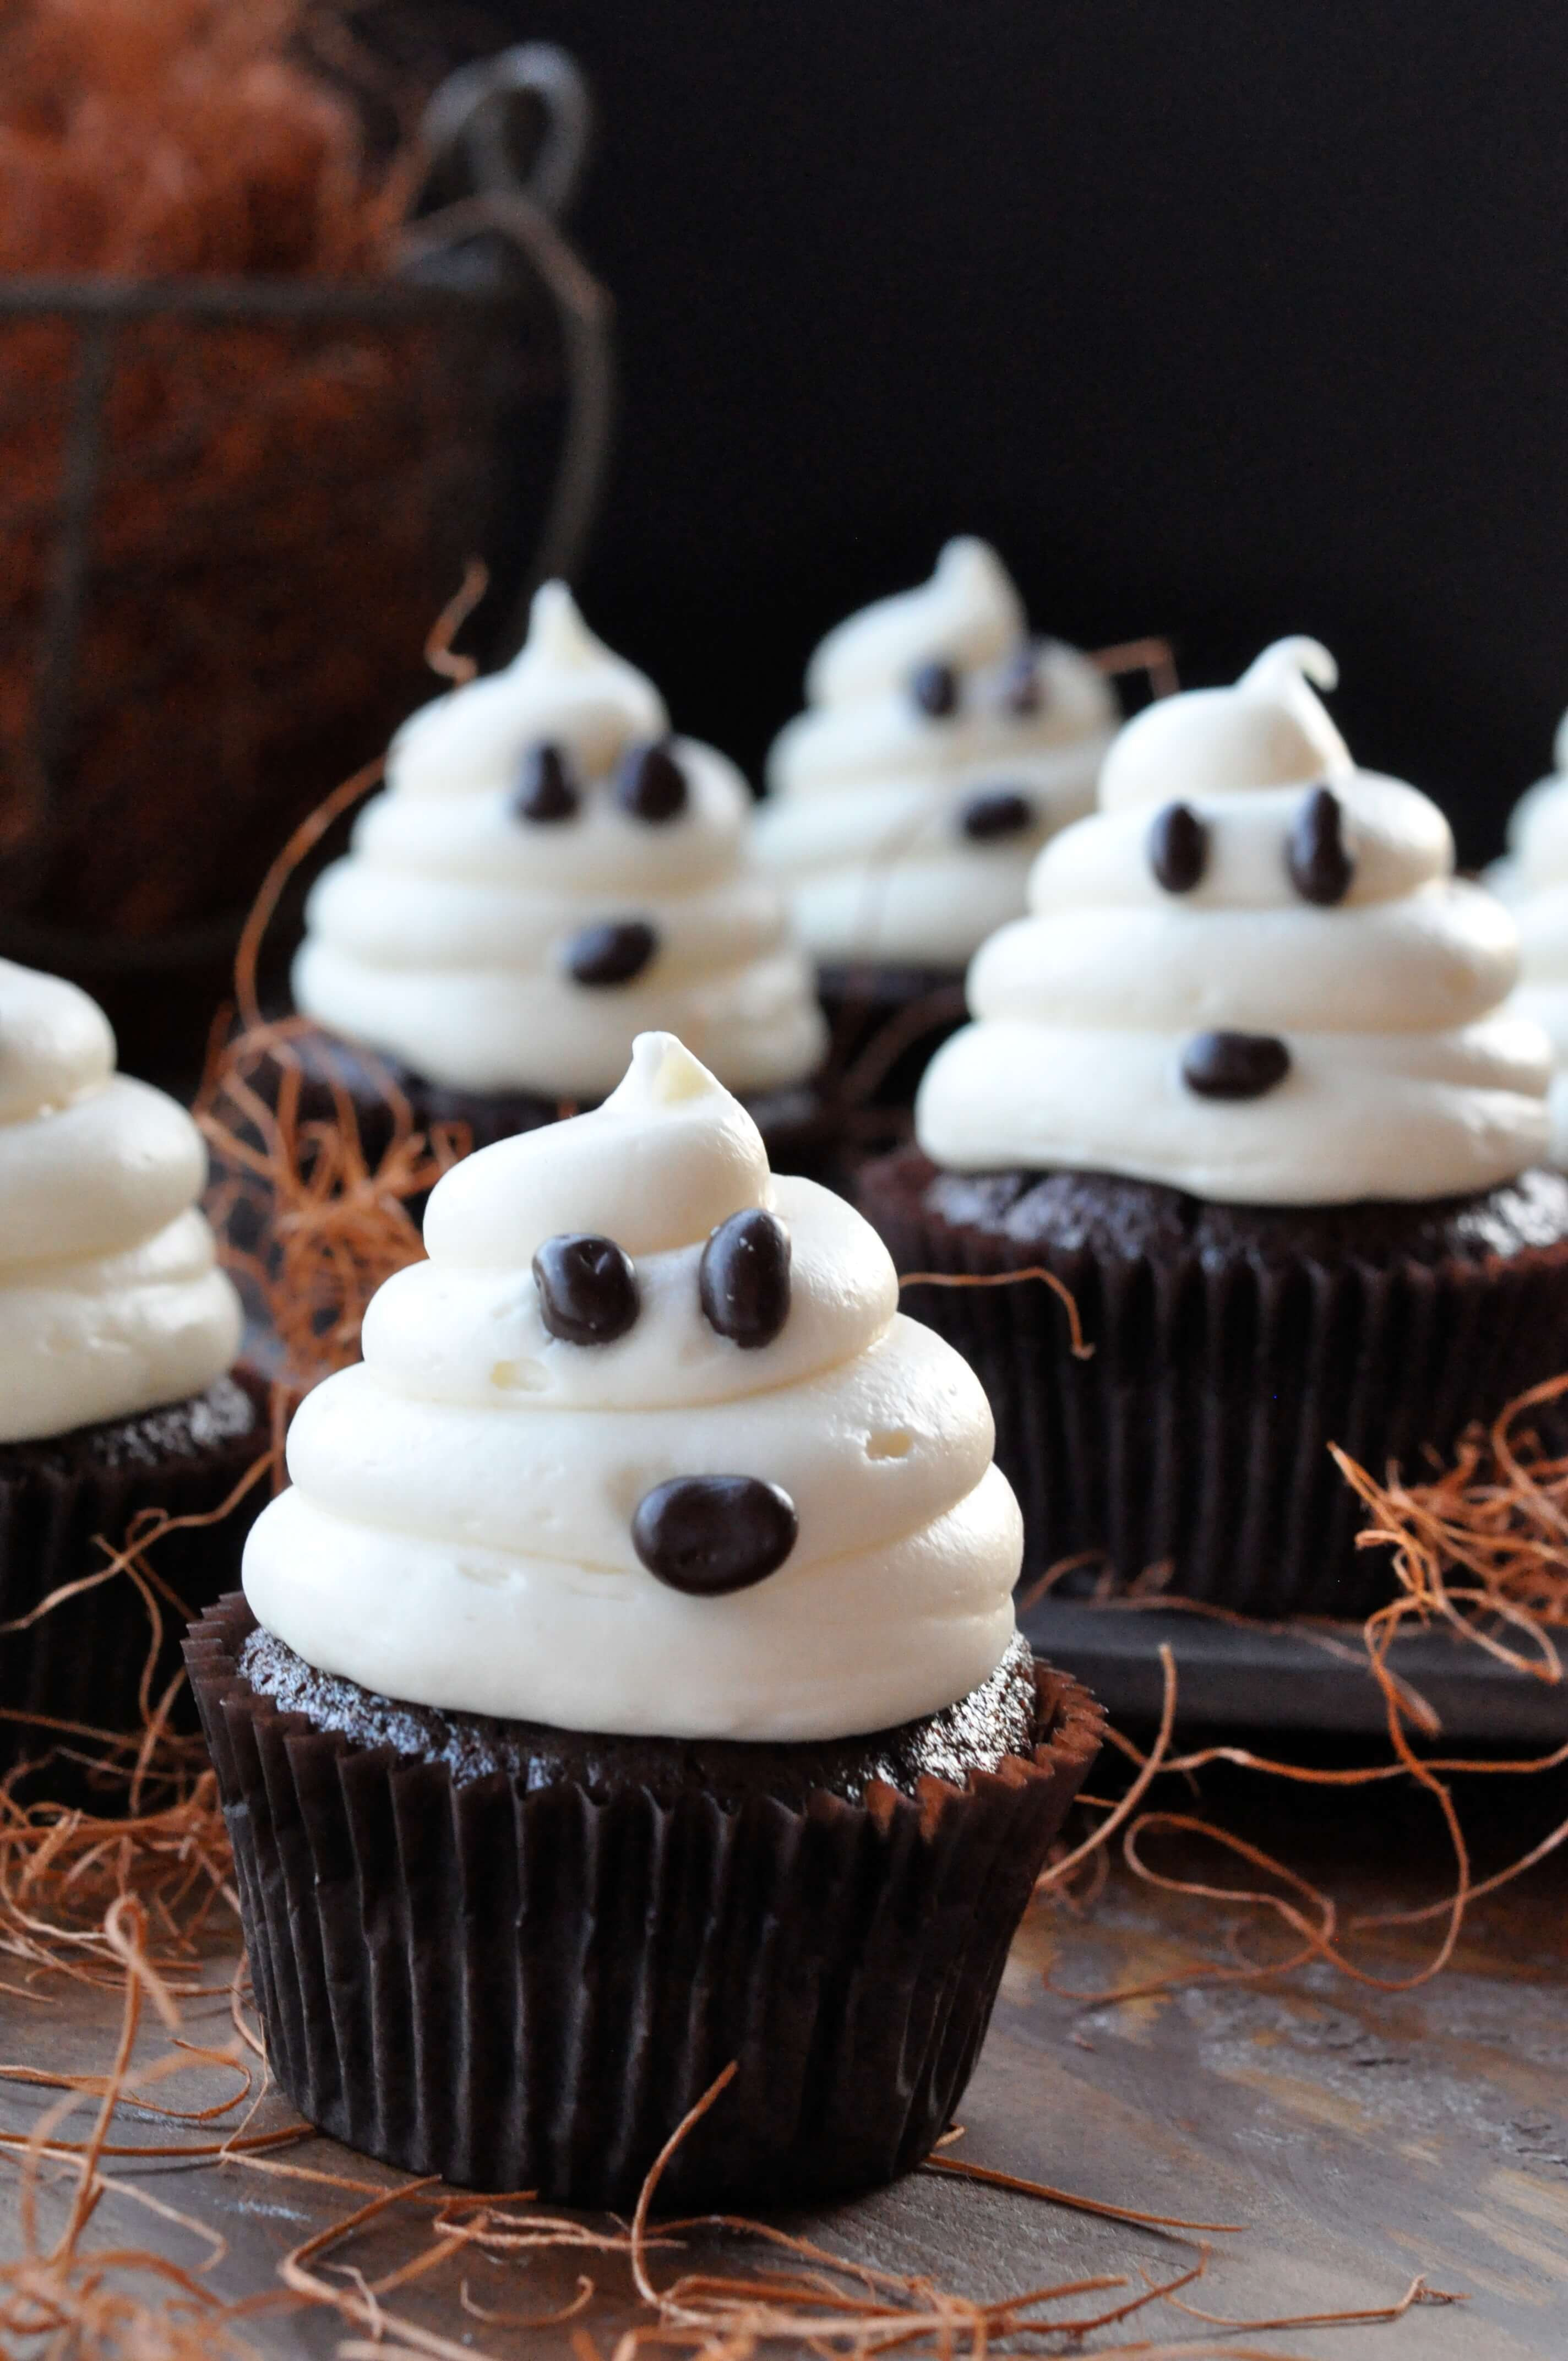 Halloween Cupcakes Cakes  Halloween Ghosts on Carrot Cake Recipe—Fast and Easy